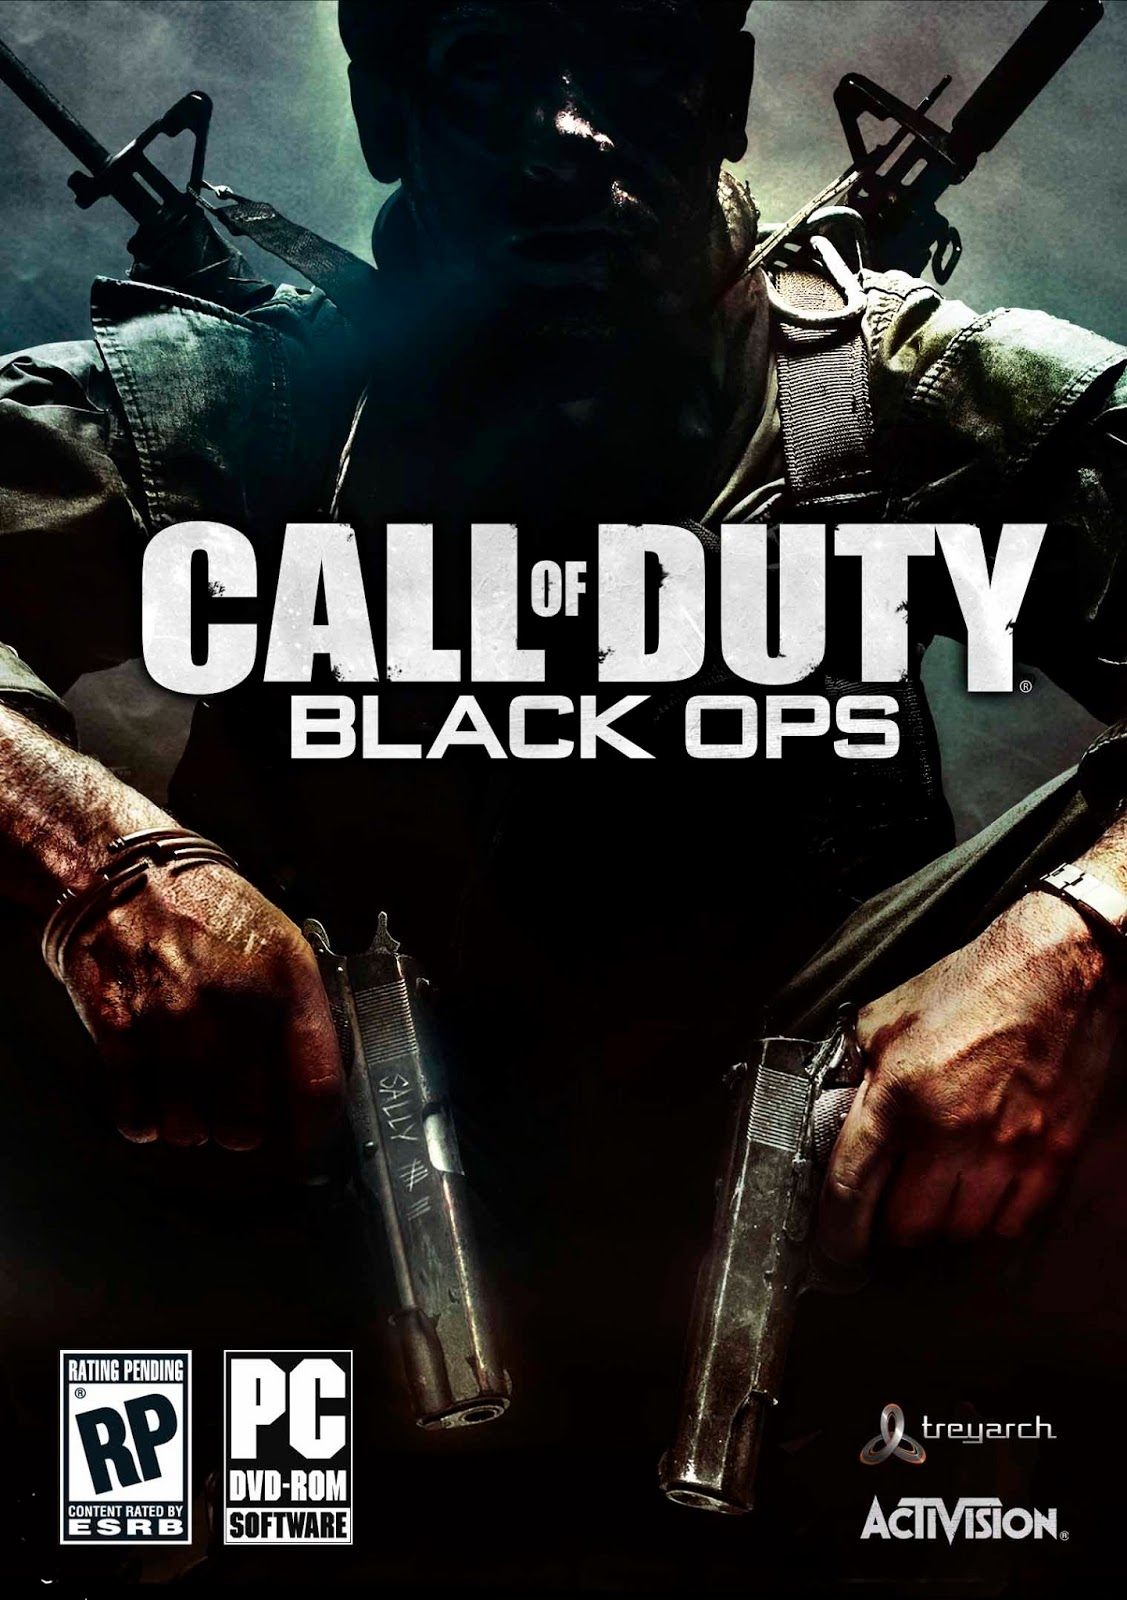 Call Of Duty Black Ops is a